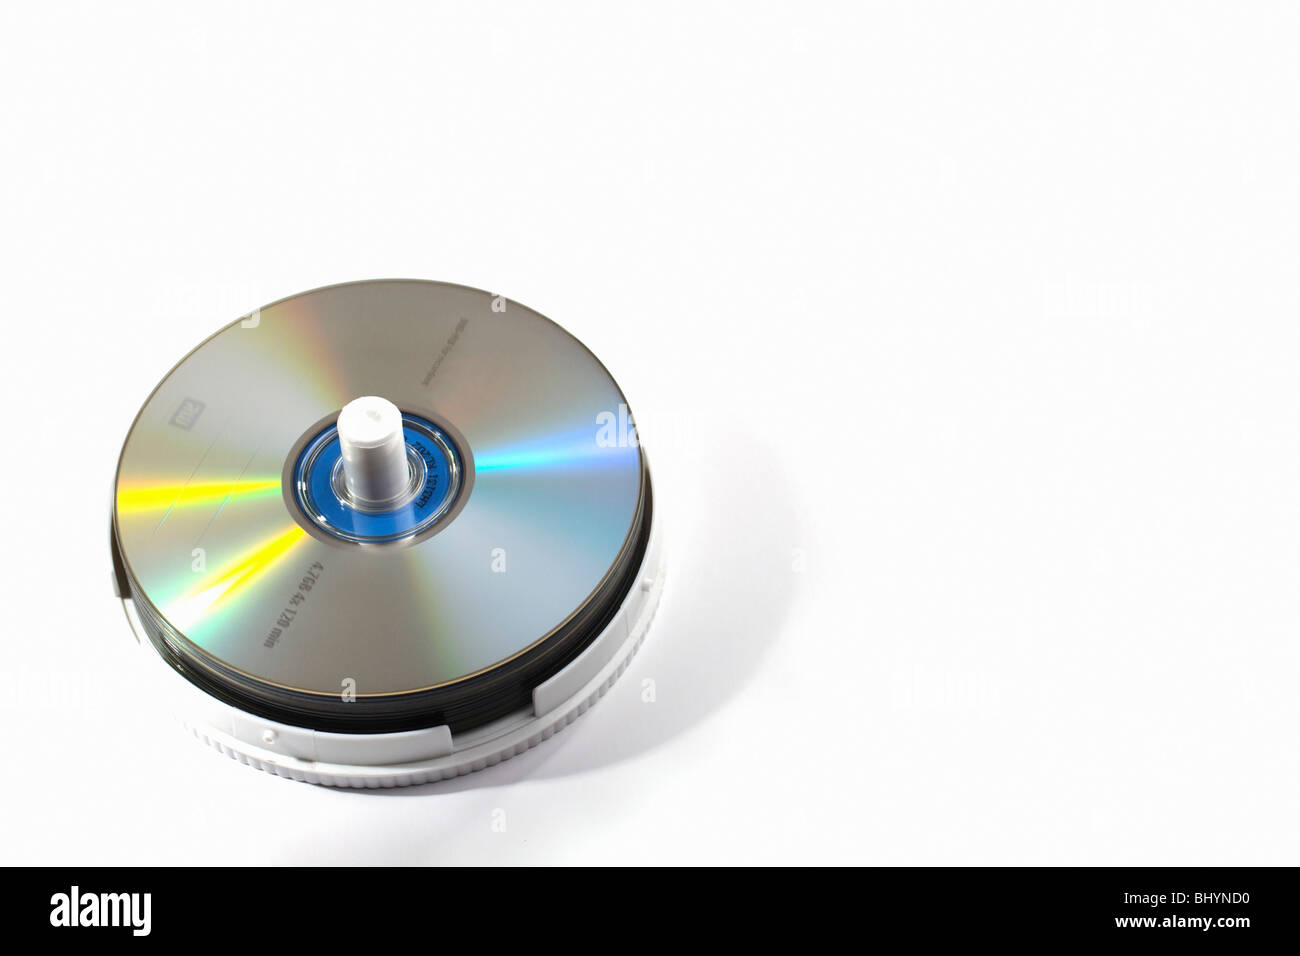 A carousel of DVDs and CDs. Isolated. Copy space. - Stock Image